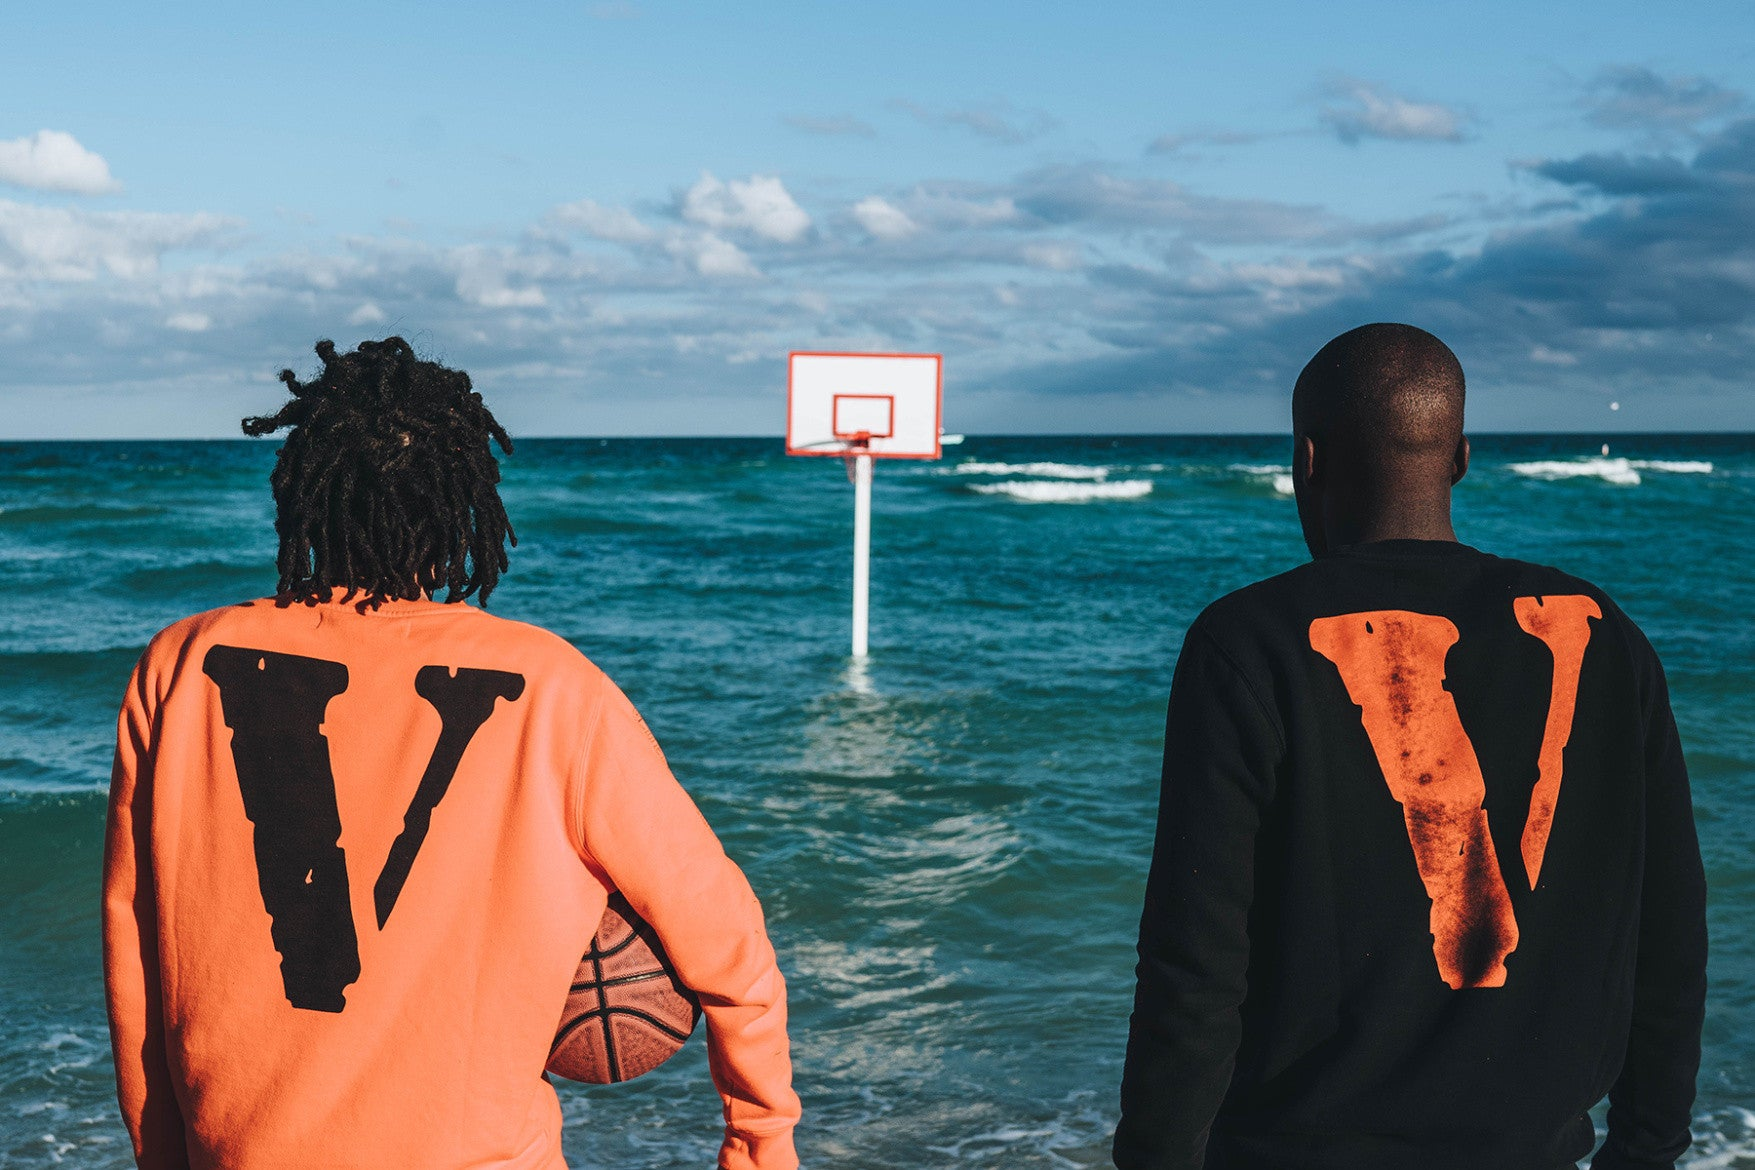 A$AP Bari Unleashes VLONE x OFF-WHITE Sweatsuits on Day Three of Art Basel Miami